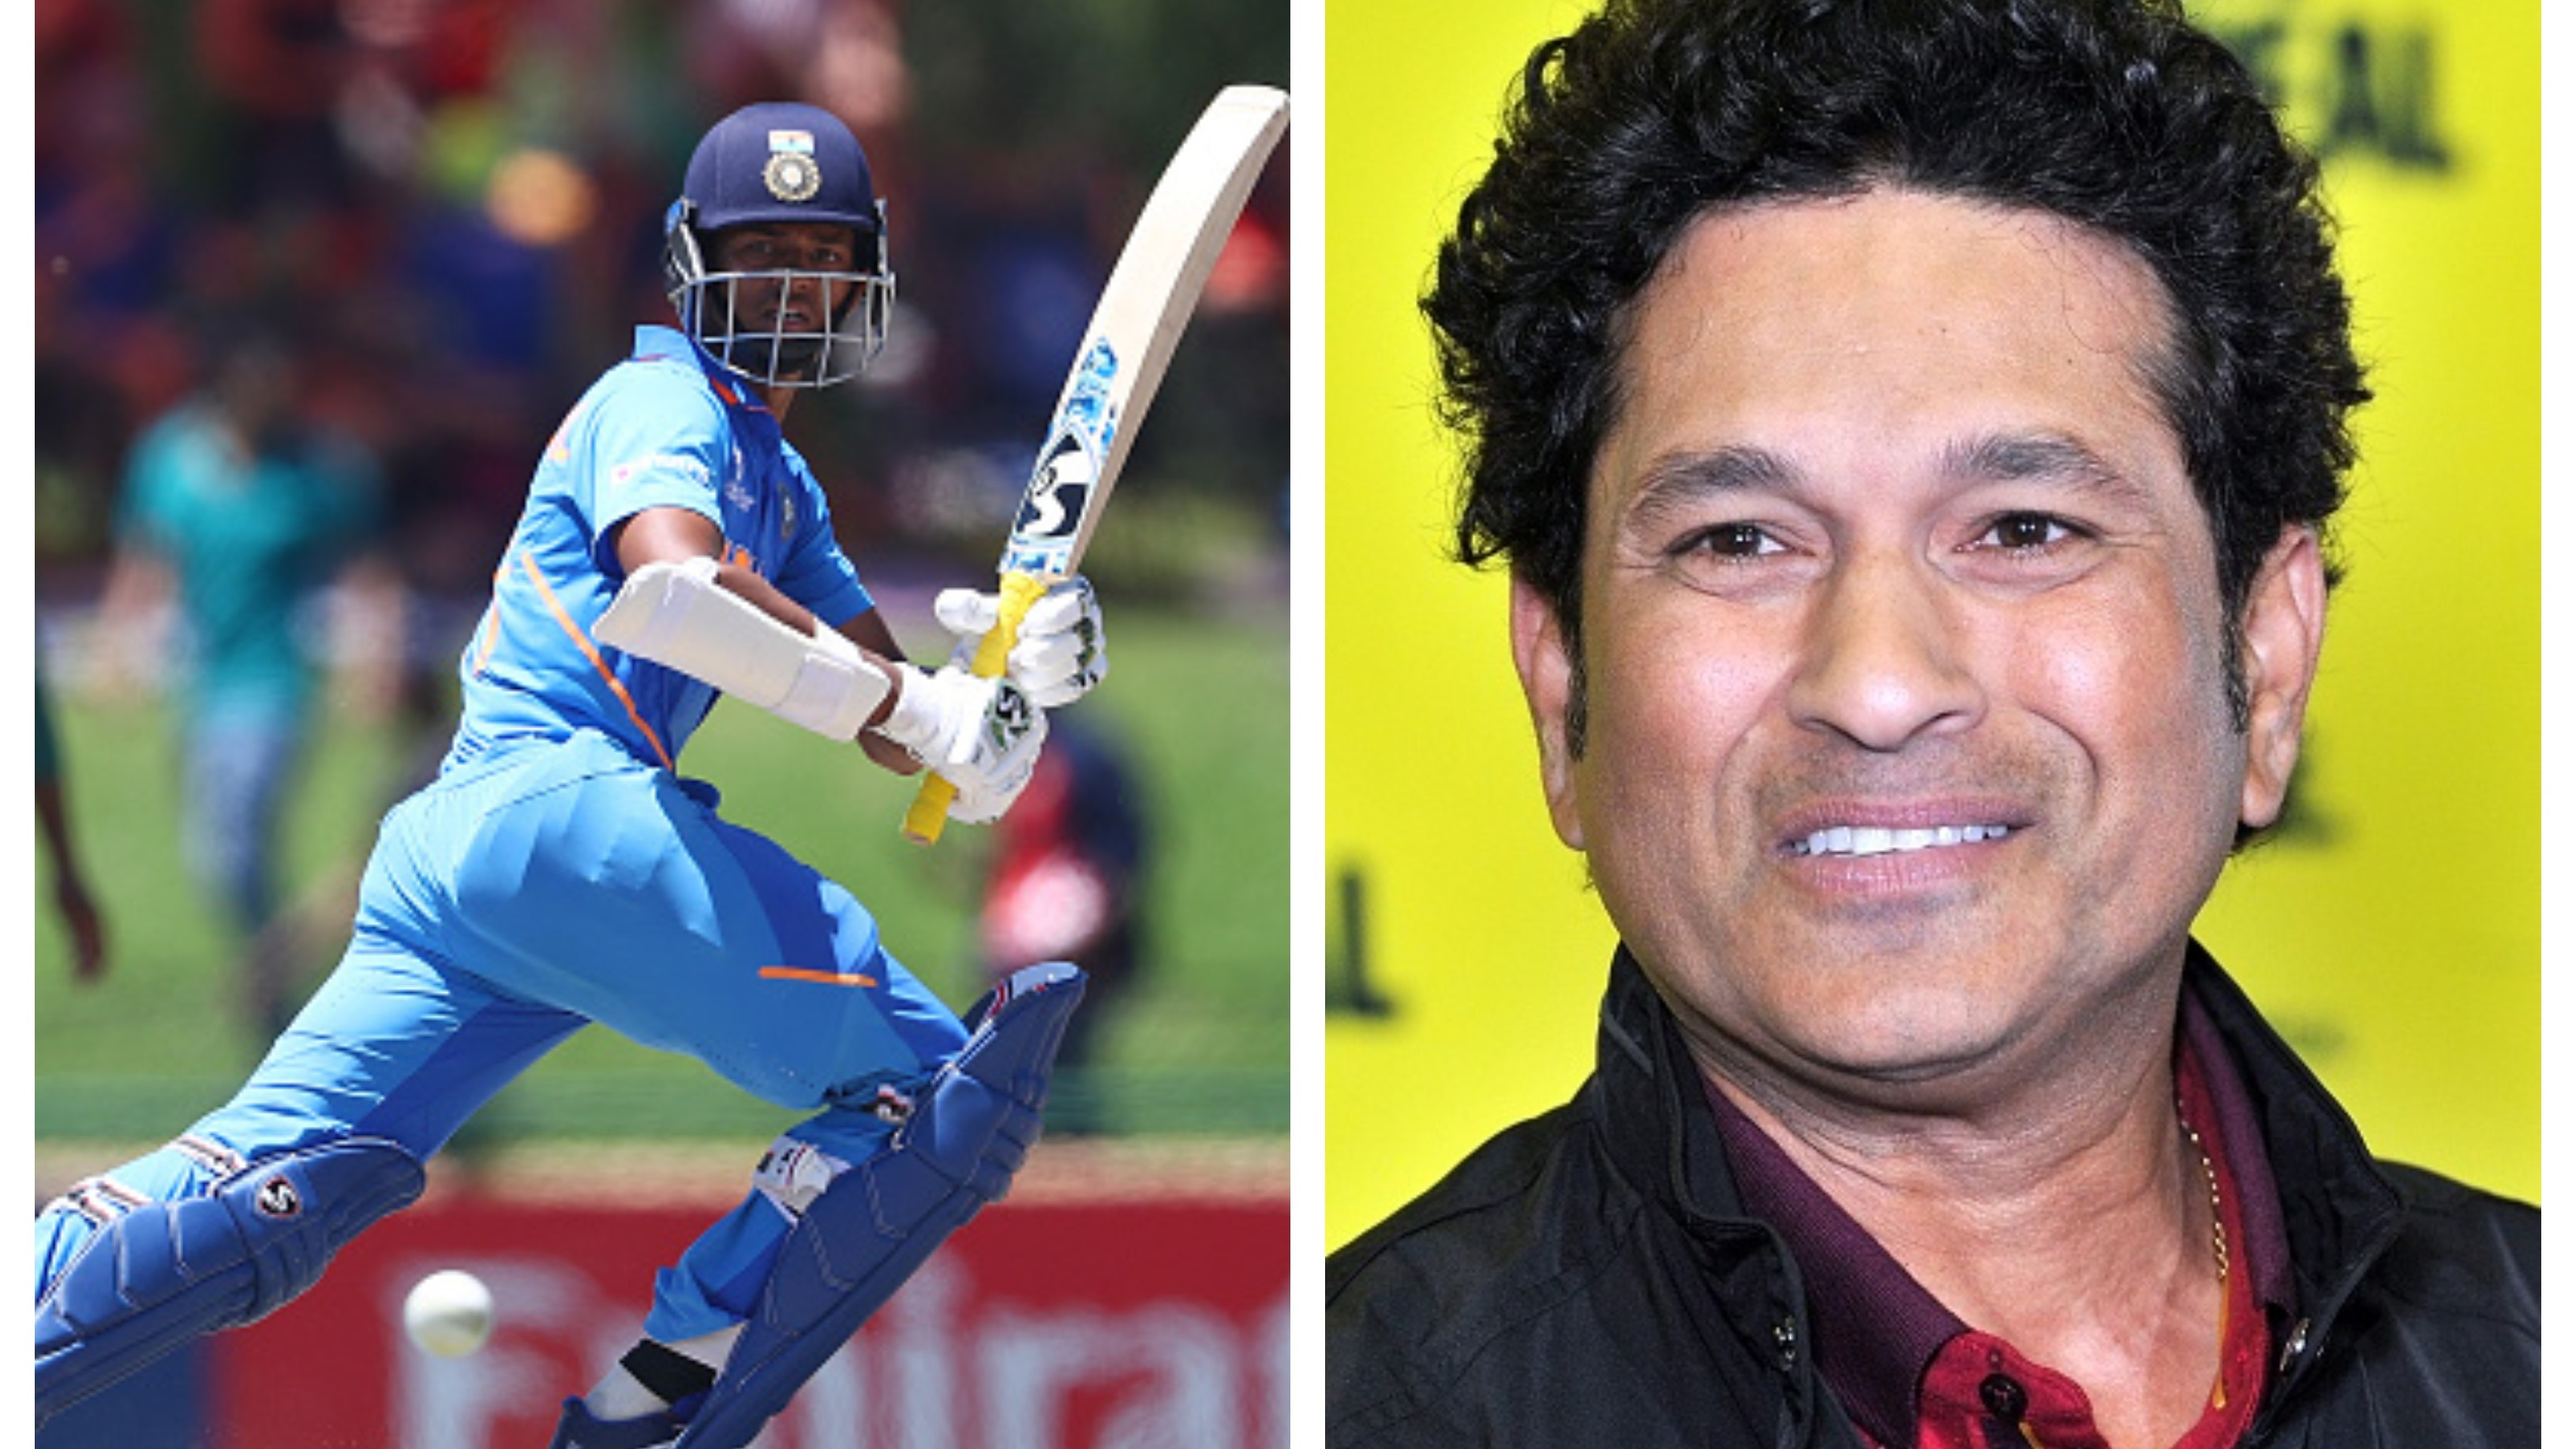 U19CWC 2020: Tendulkar's special advice helps Yashasvi Jaiswal lit up the World Cup